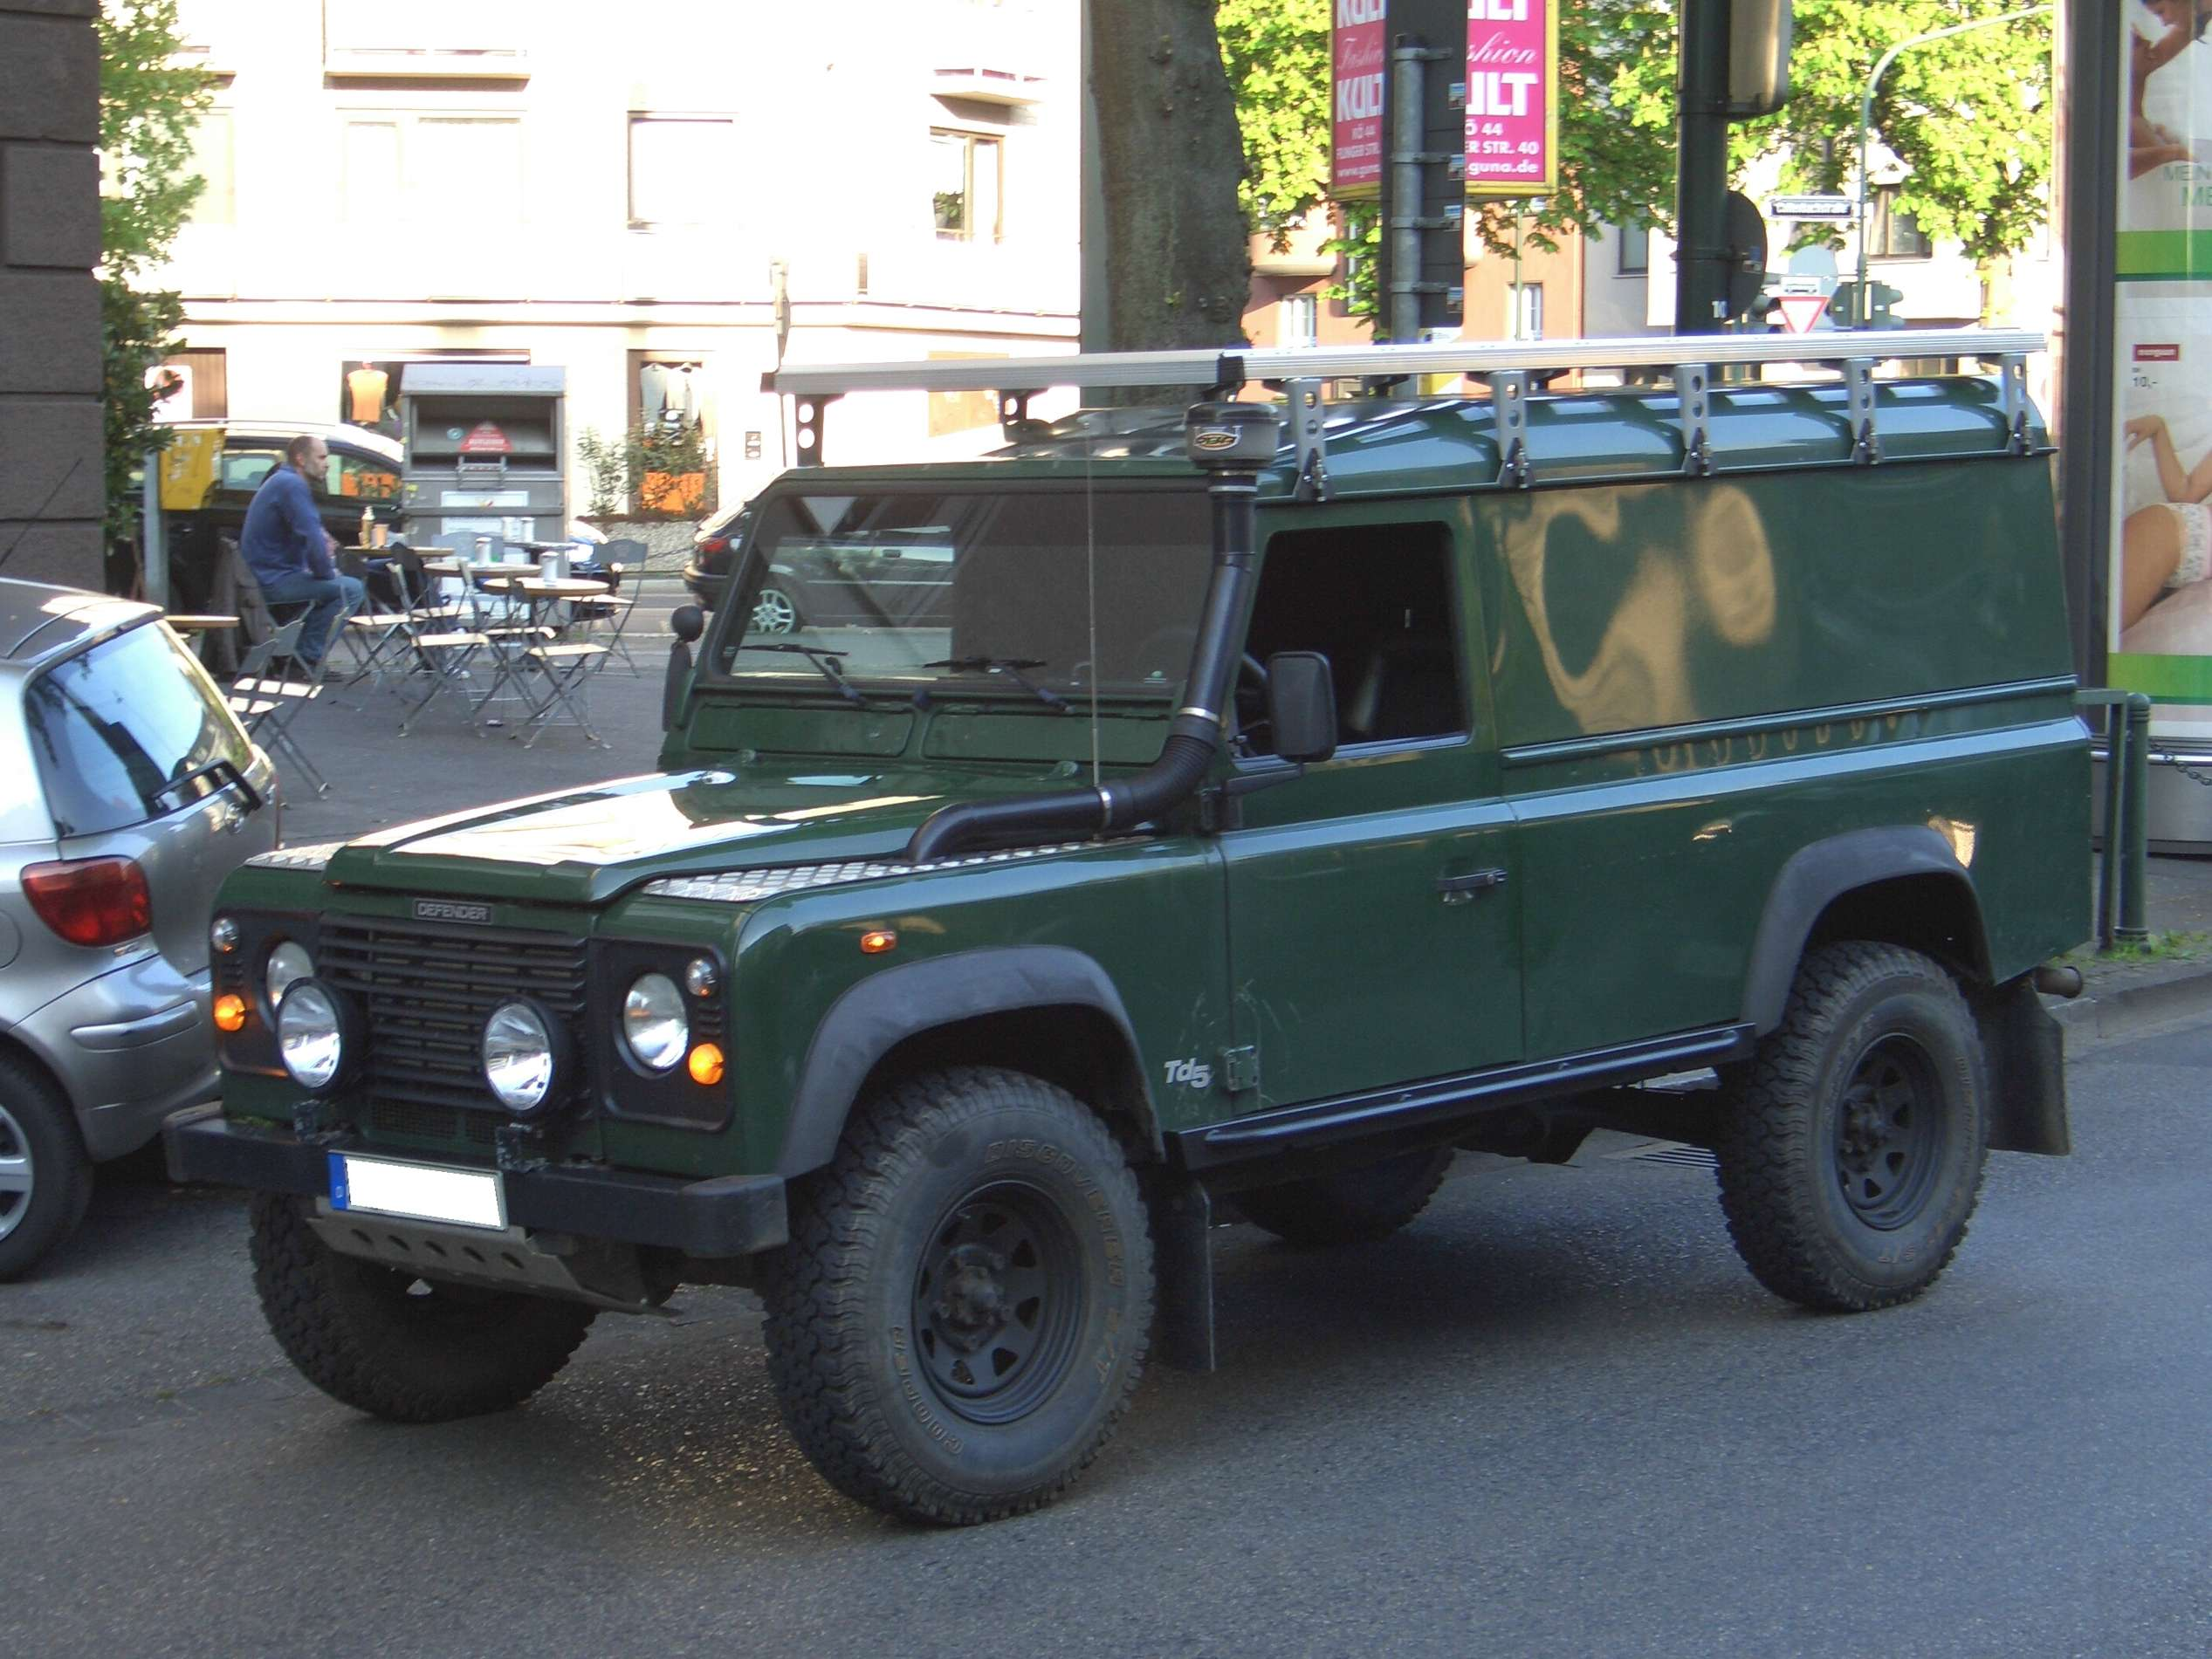 Land-Rover Defender 110 #8397392